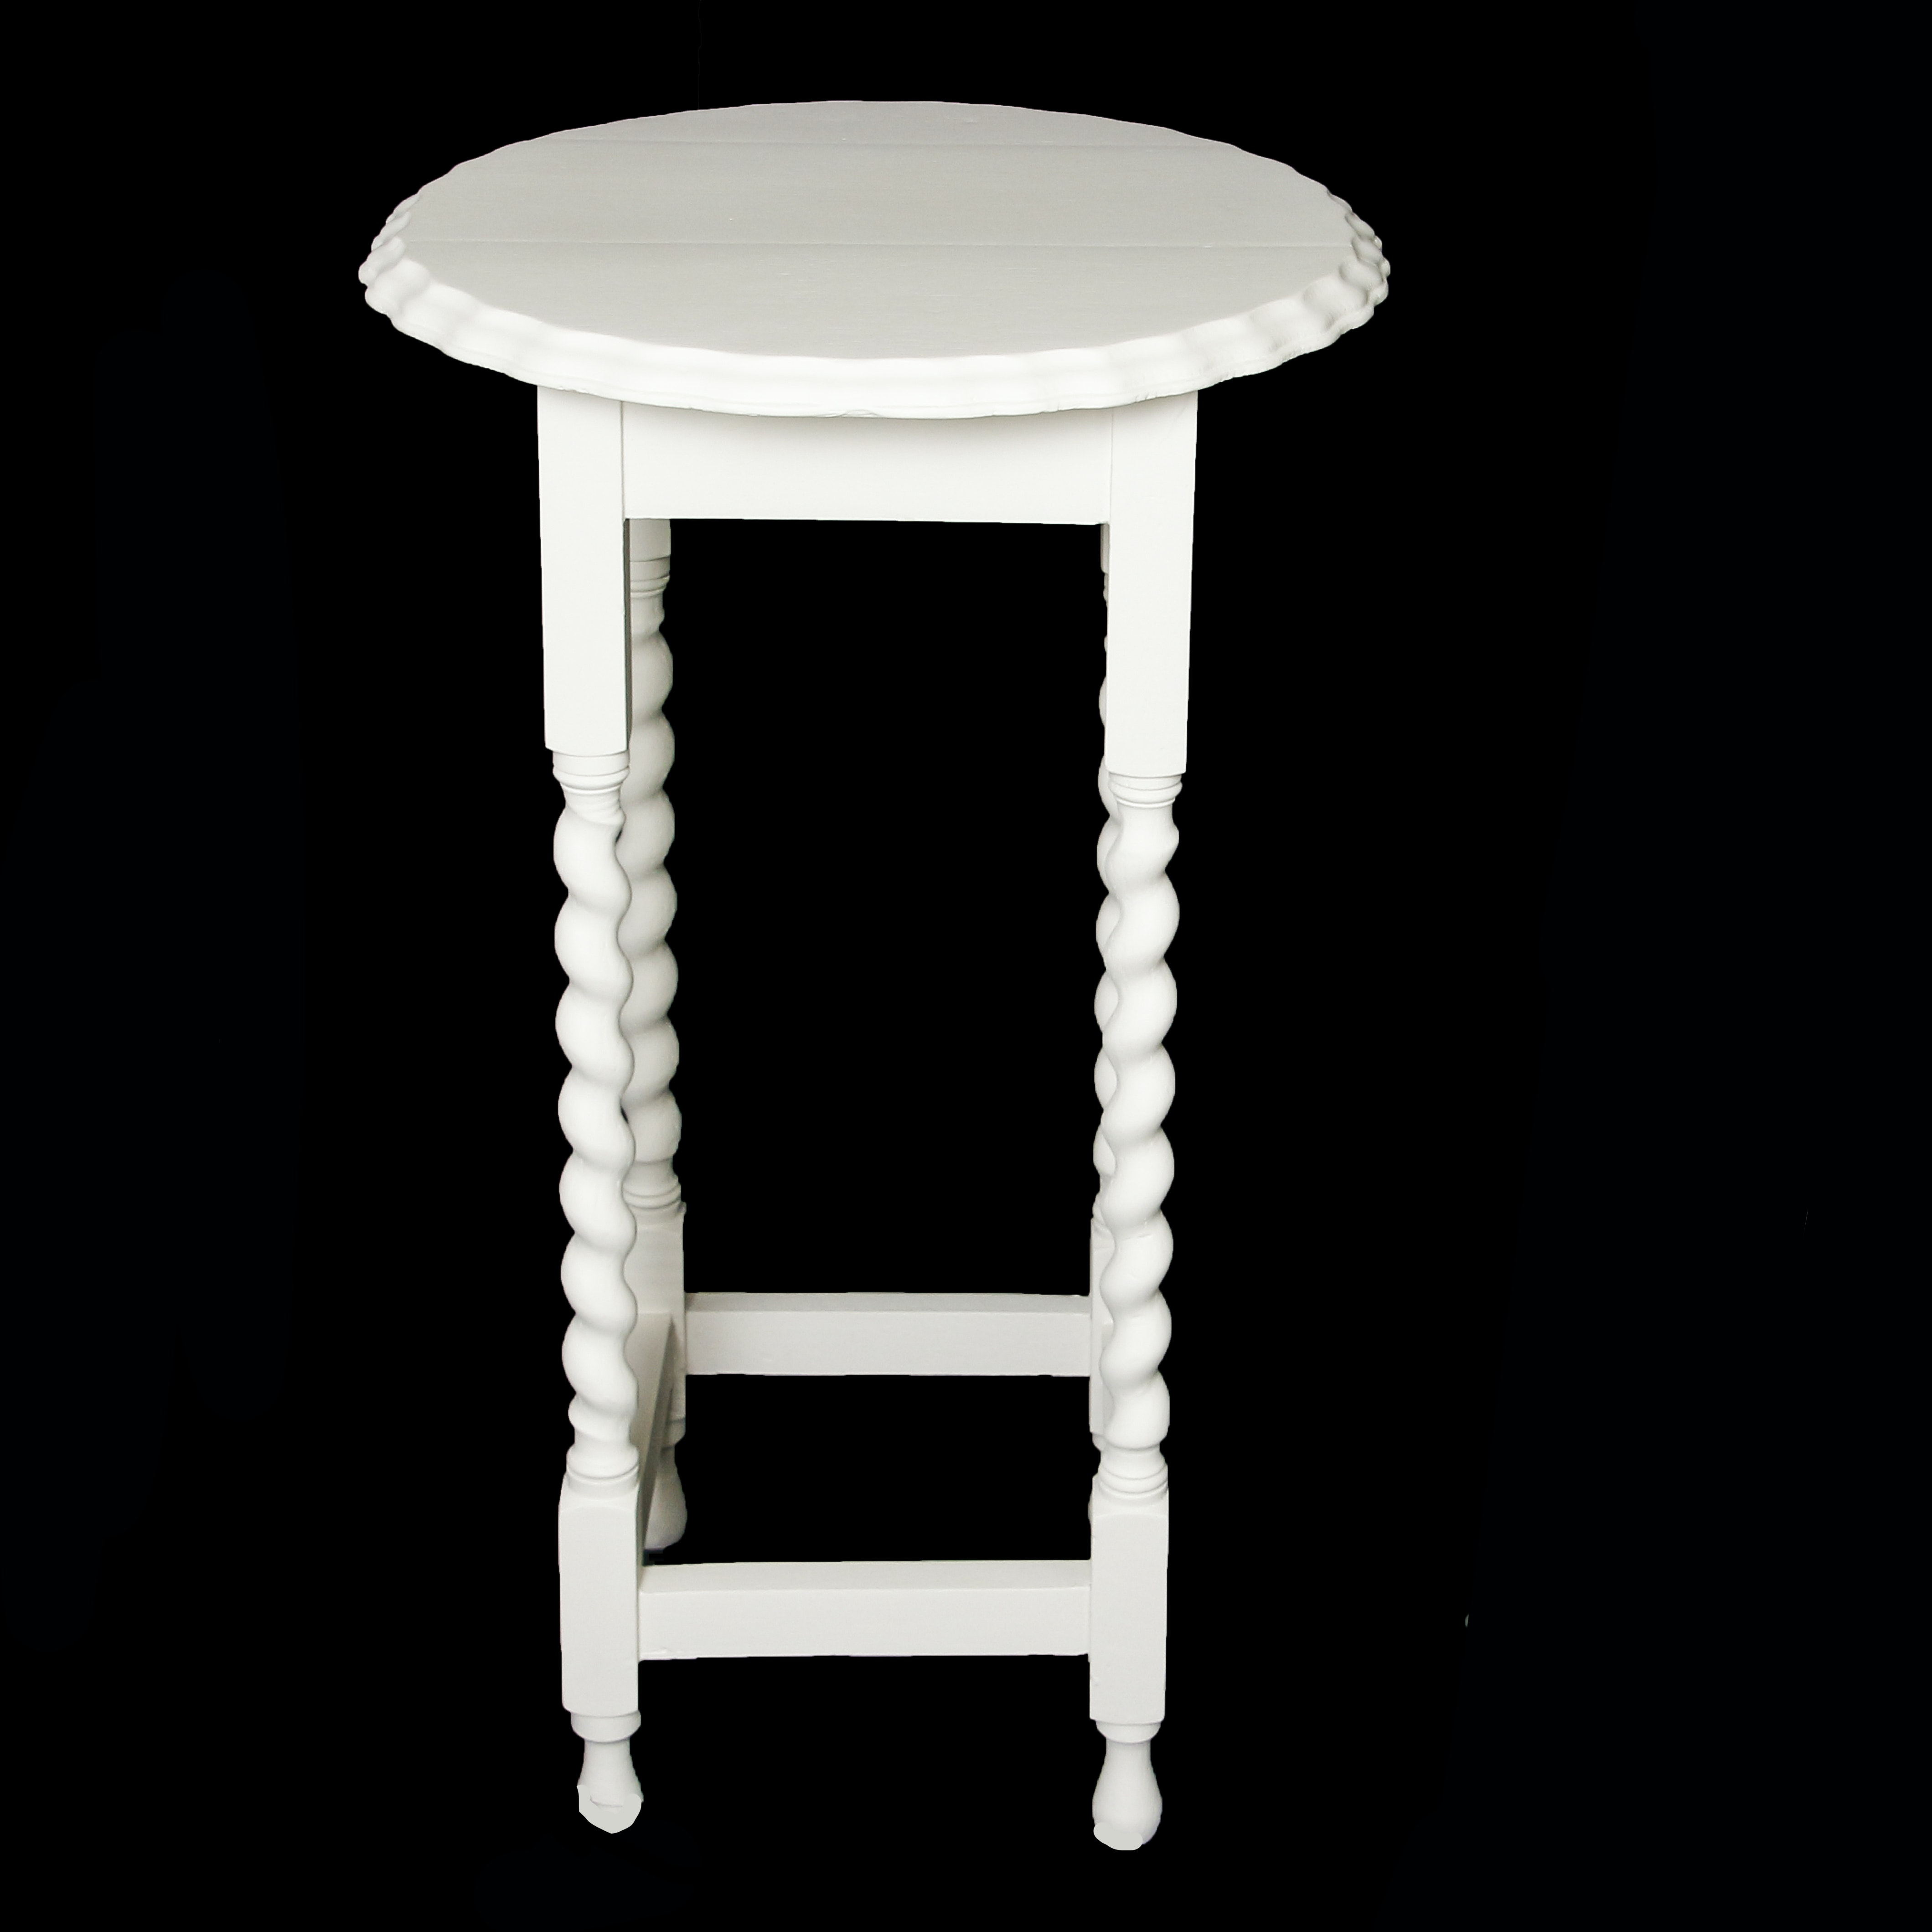 White Painted Wooden Accent Table